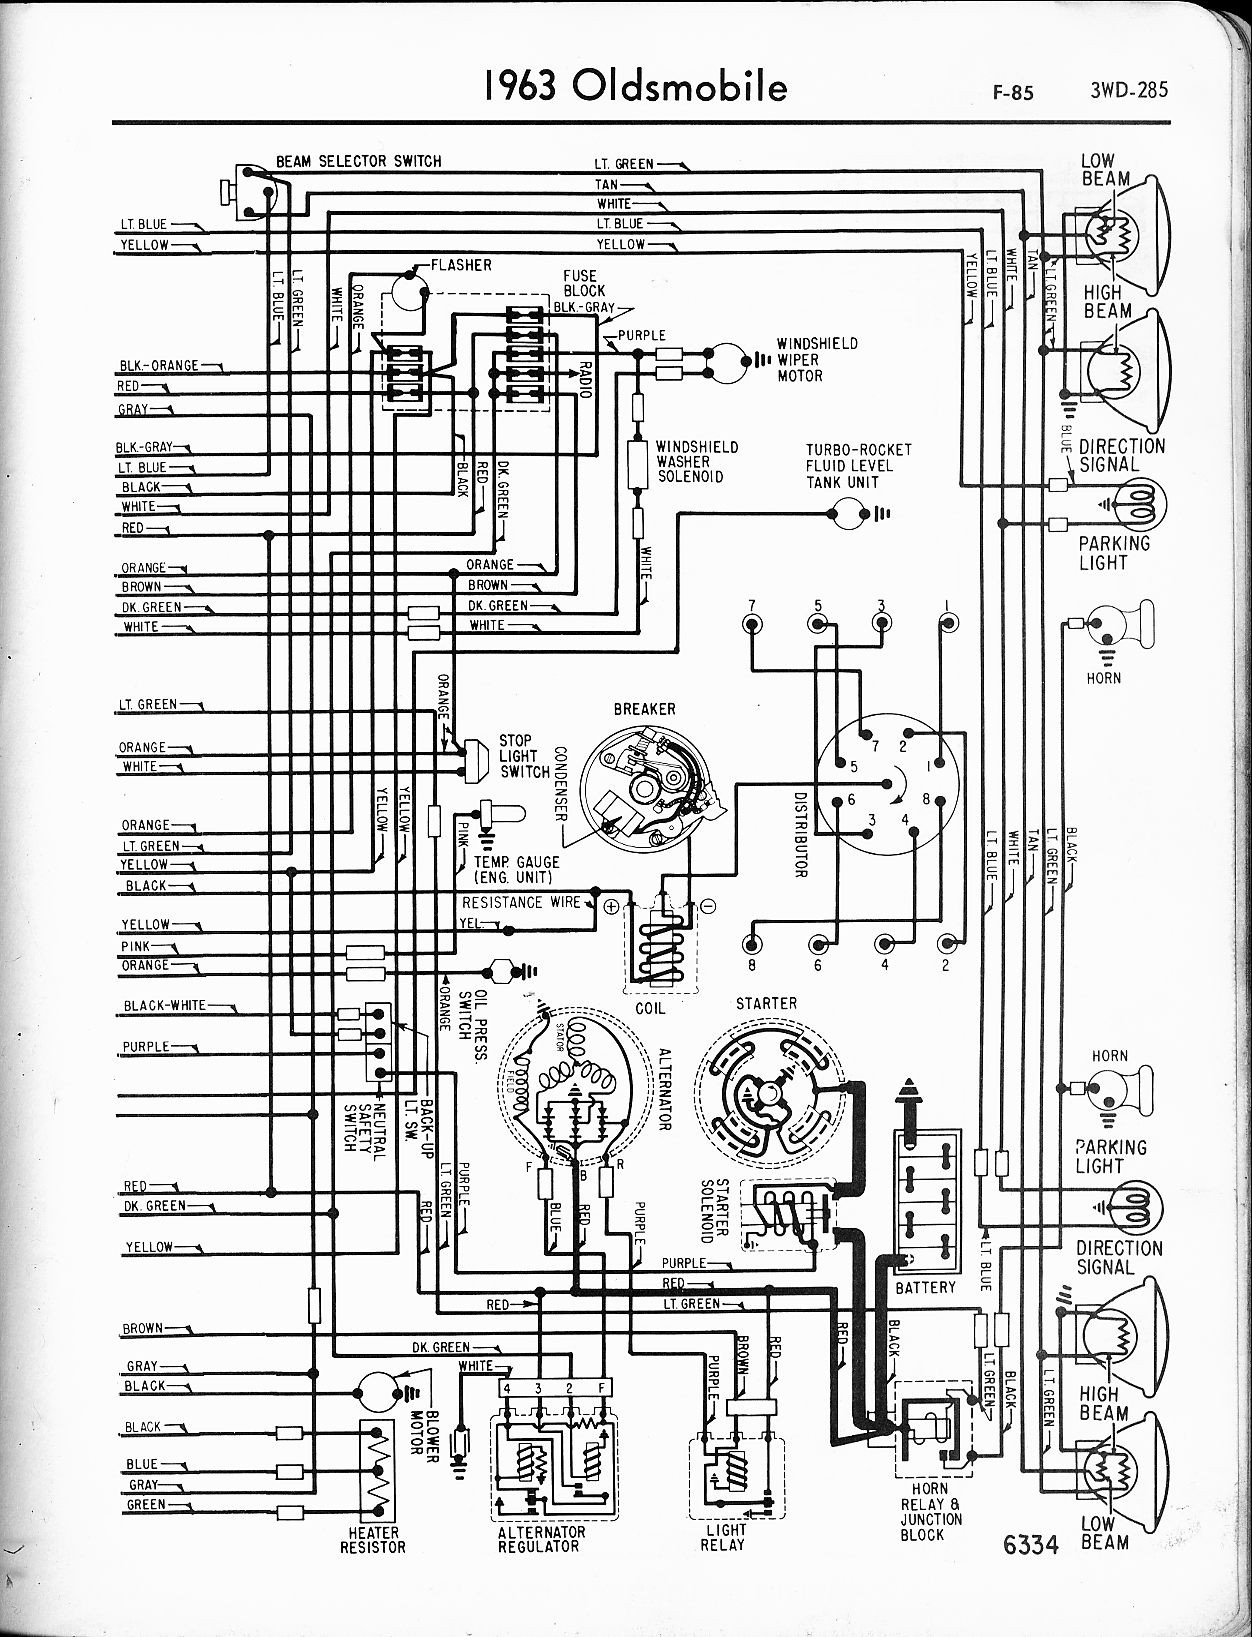 1994 Oldsmobile Cutl Ciera Wiring Diagram • Wiring Diagram